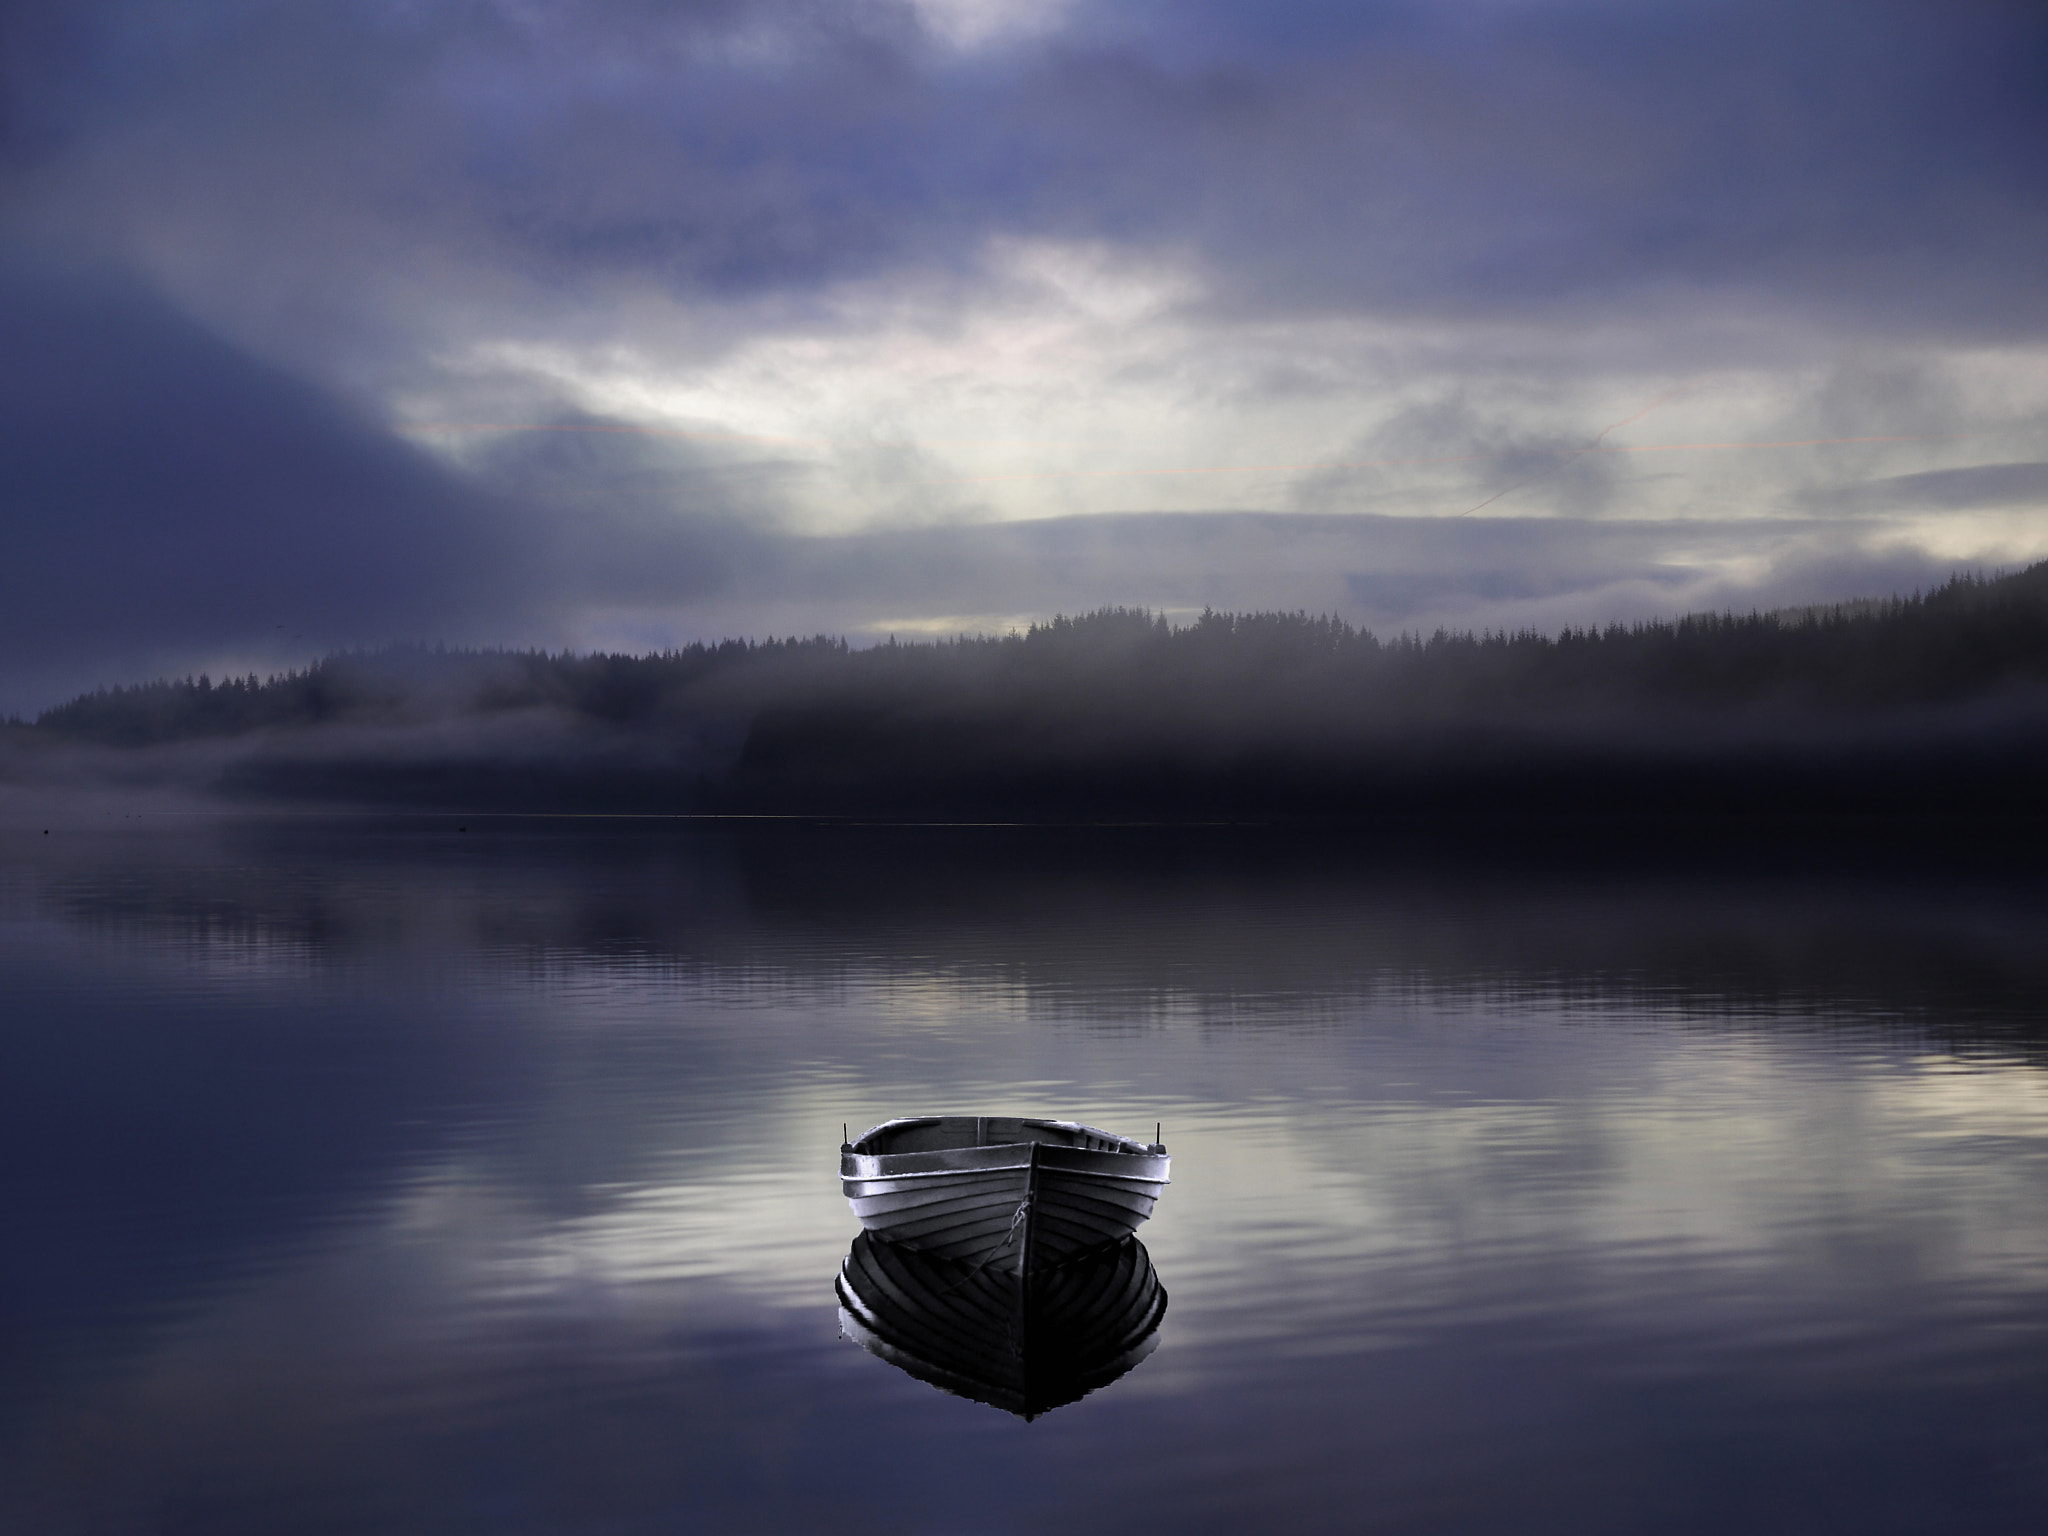 Photograph morning boat by KENNY BARKER on 500px